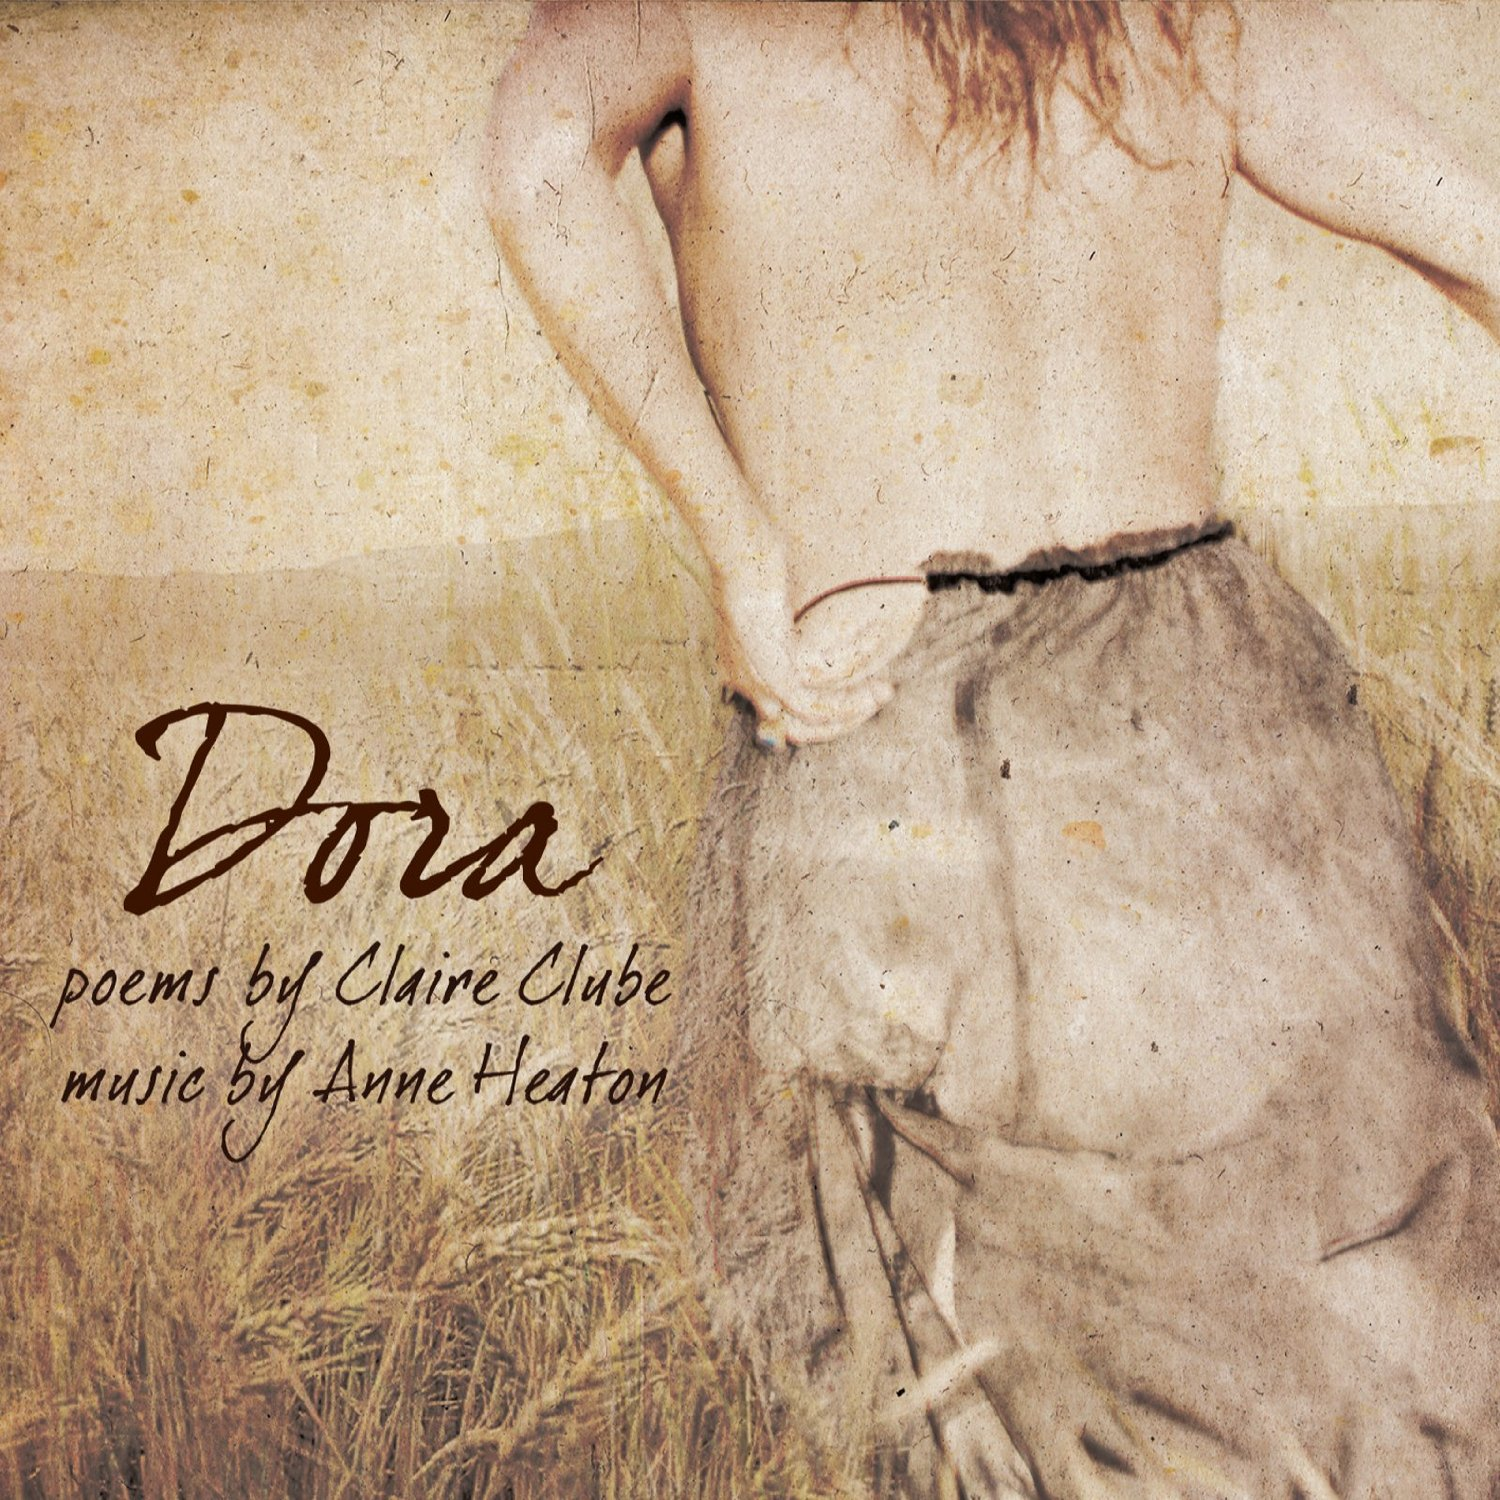 Anne Heaton's new album,Dora, is now available. It's a collaborative project featuring the poetry of the late Claire Clube.